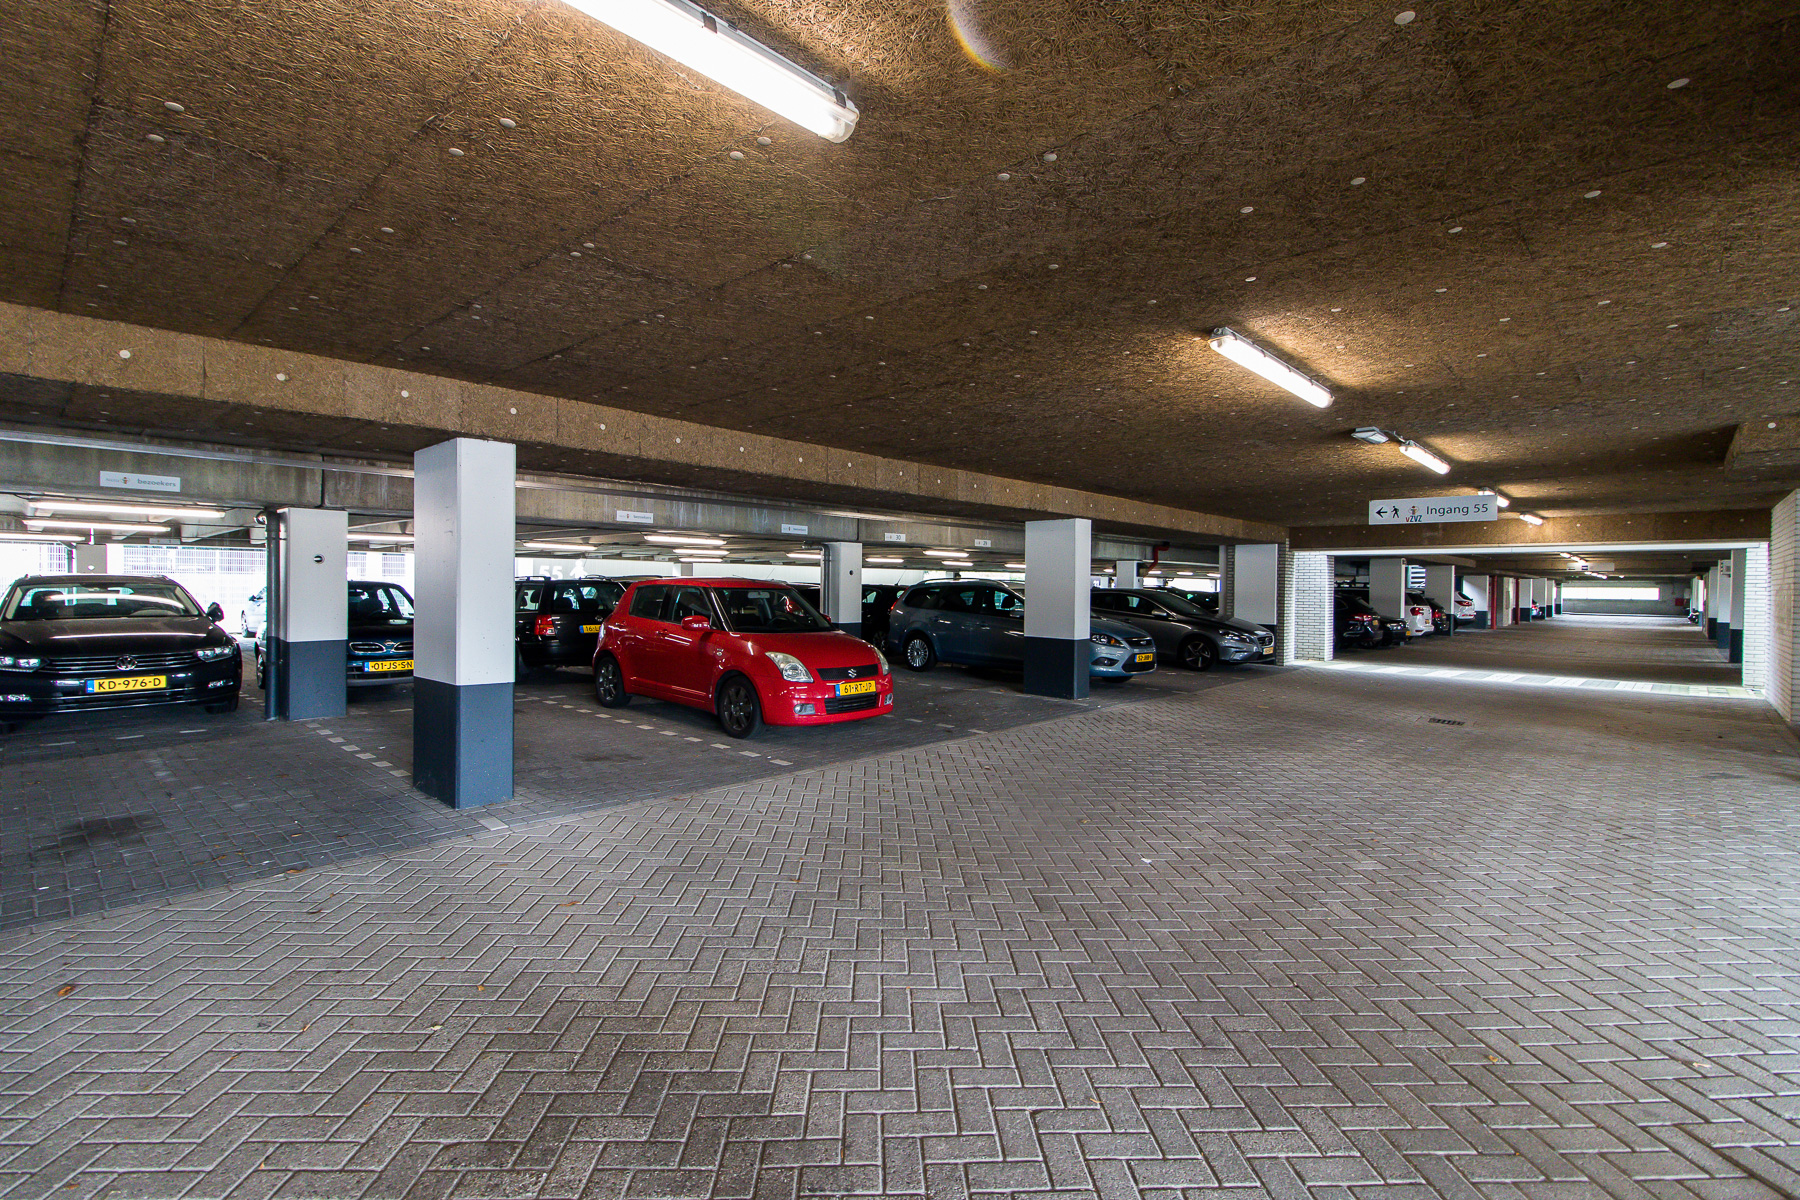 underground parking spots for rent